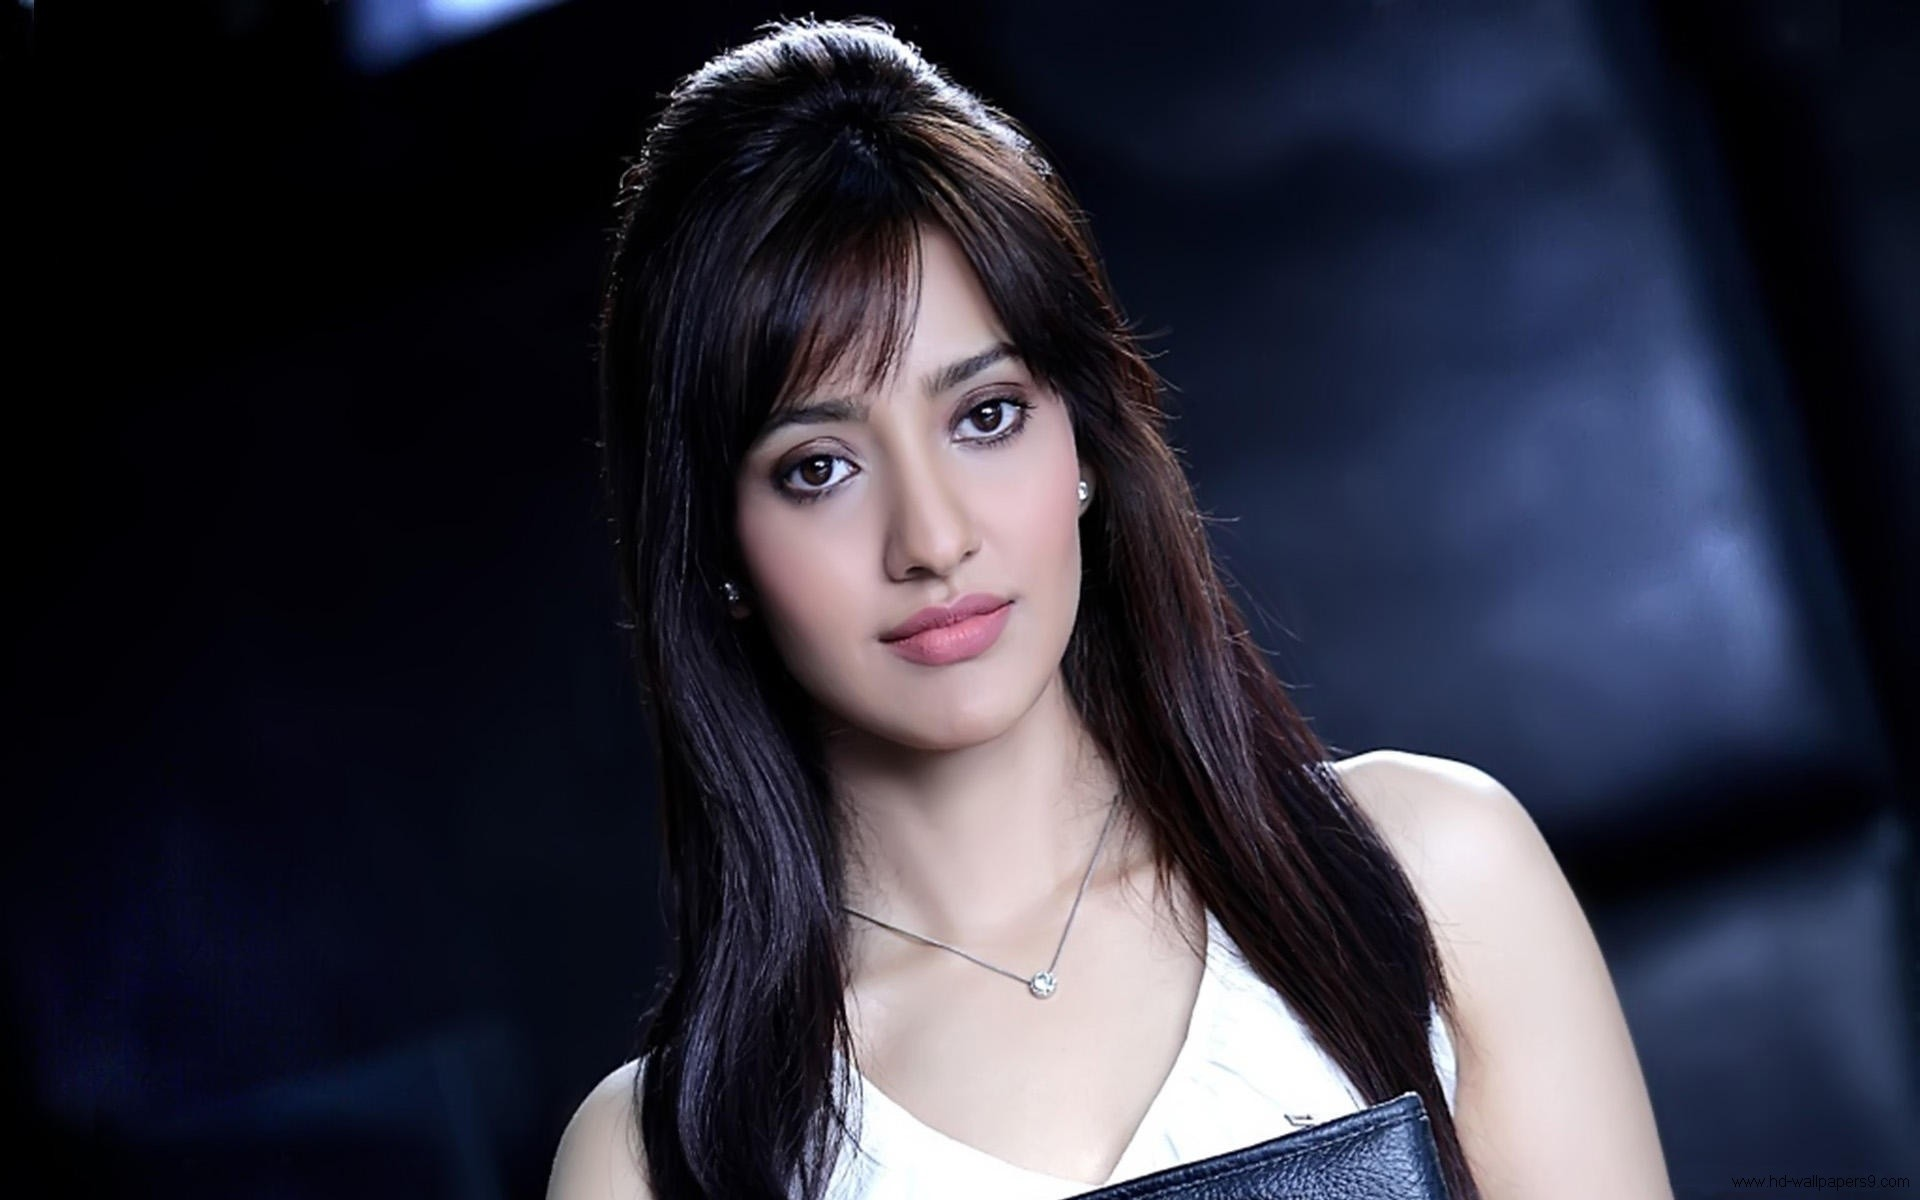 HD Wallpapers Of Bollywood Actress (68+ Images